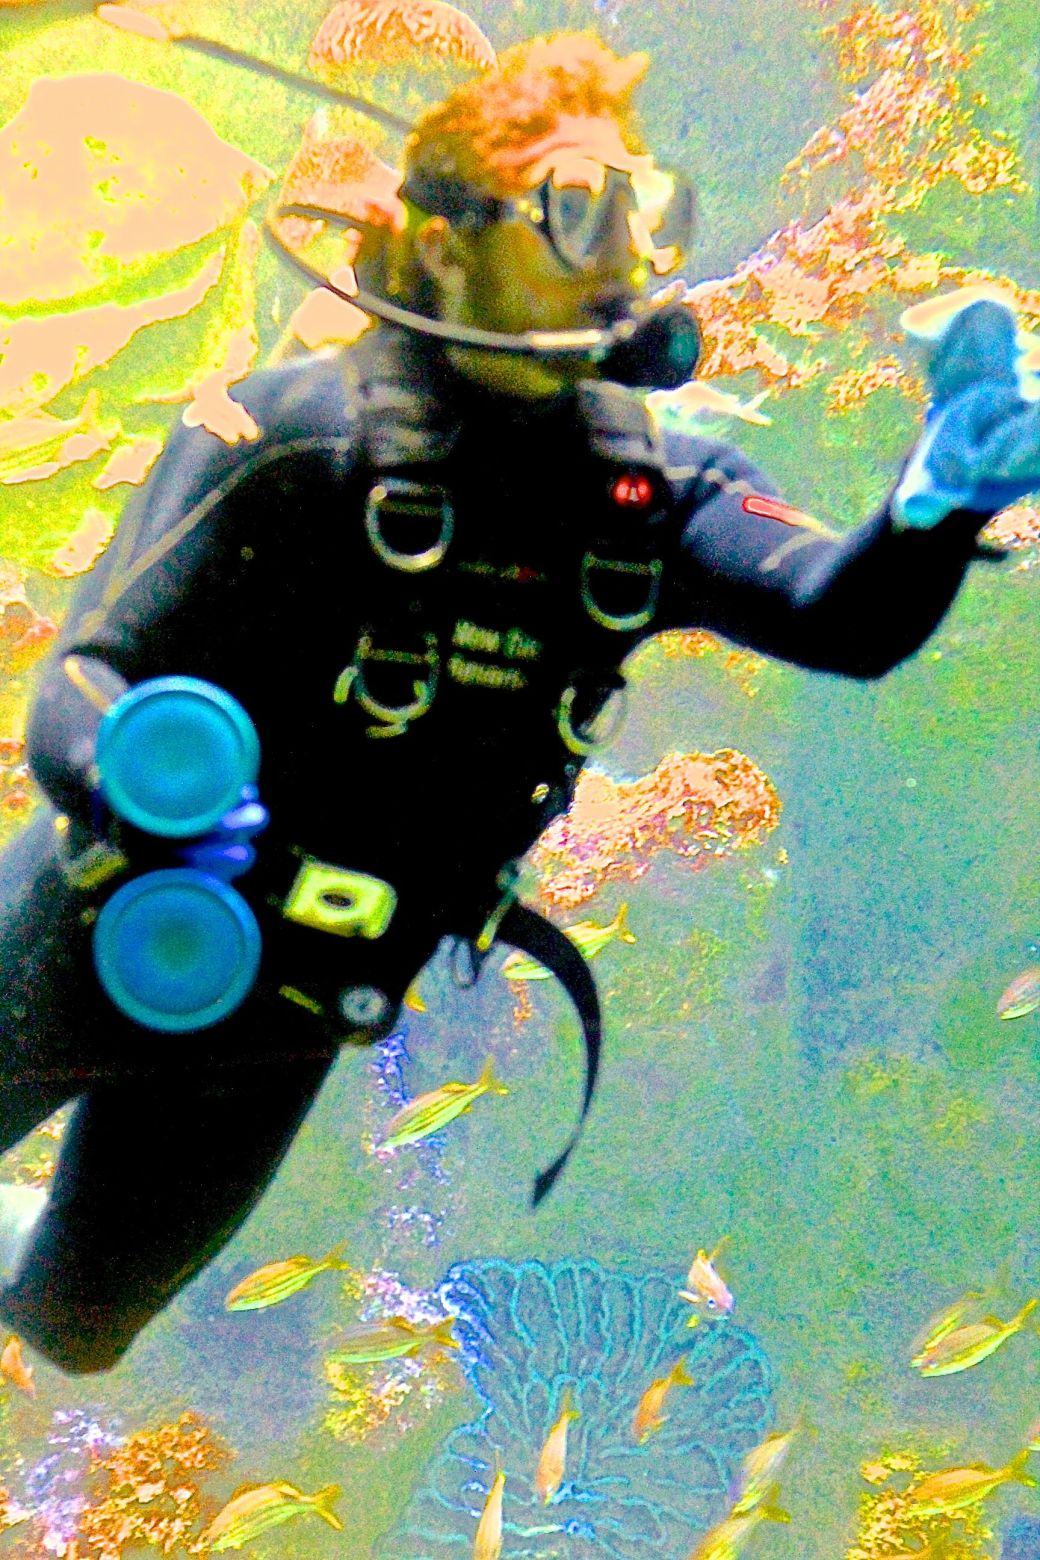 boston new england aquarium july 6 2015 scuba diver